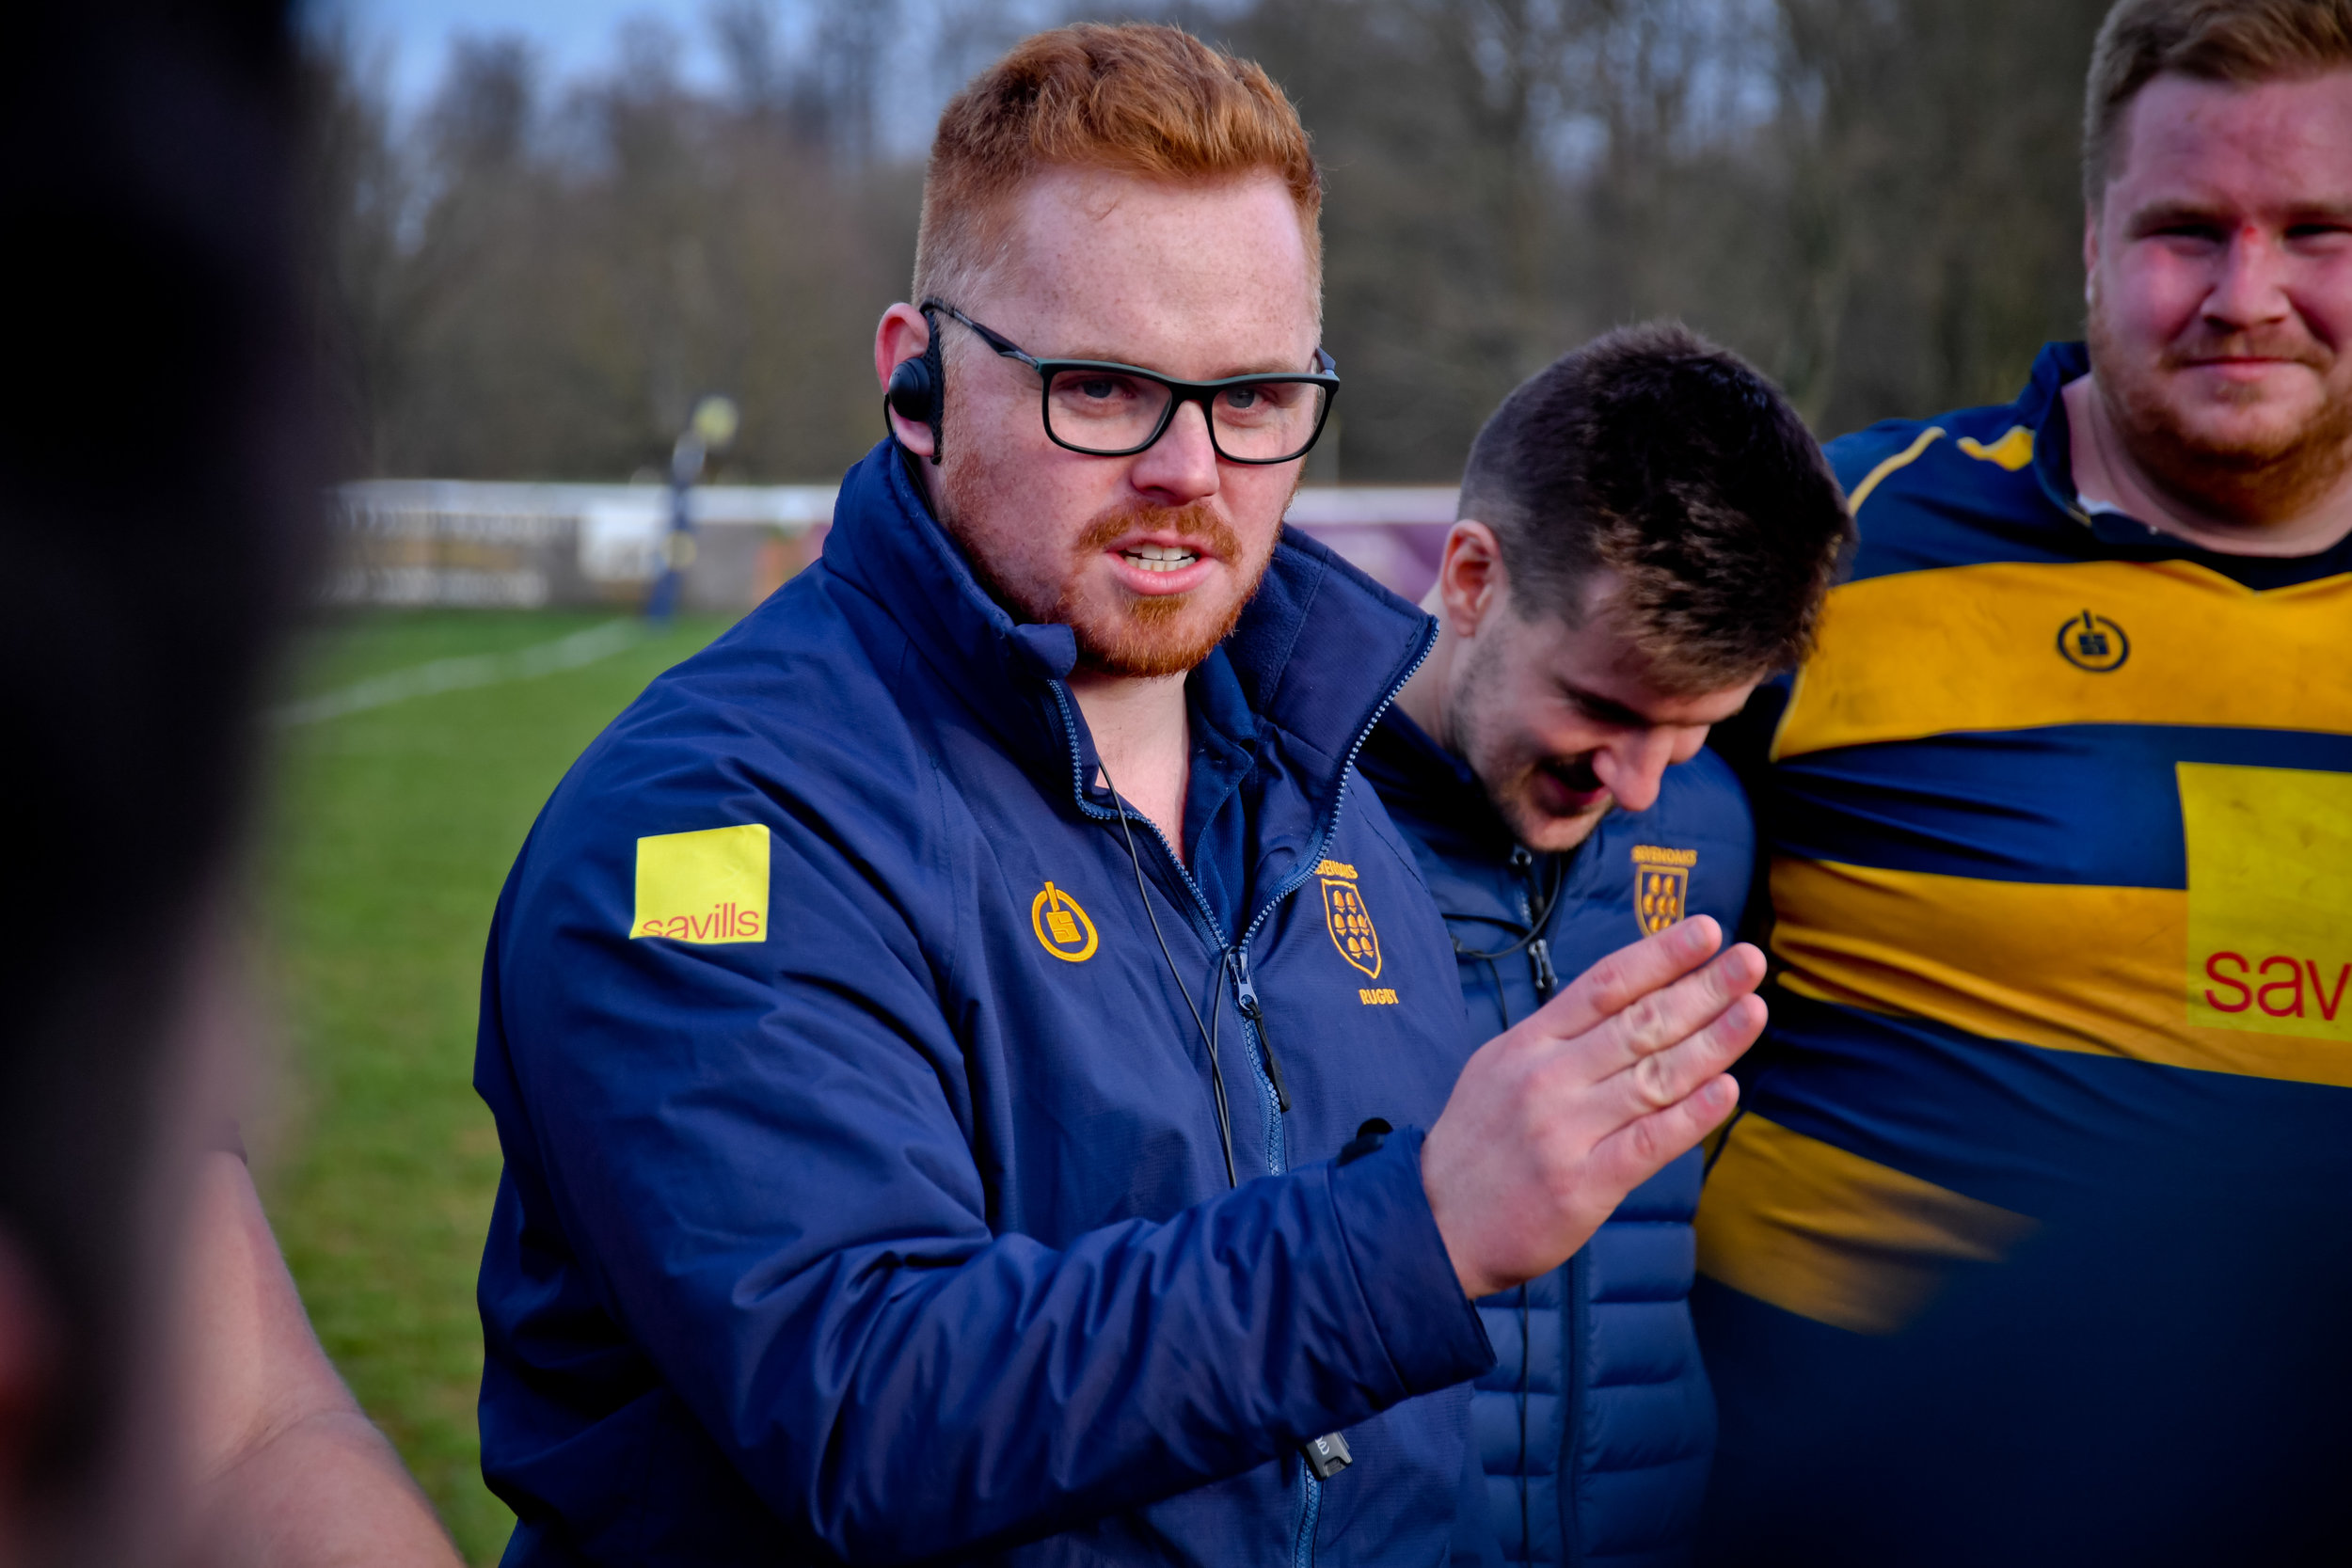 Head Coach Adam Bowman has called for focus ahead of this week's matches. Photo Credit: David Purday